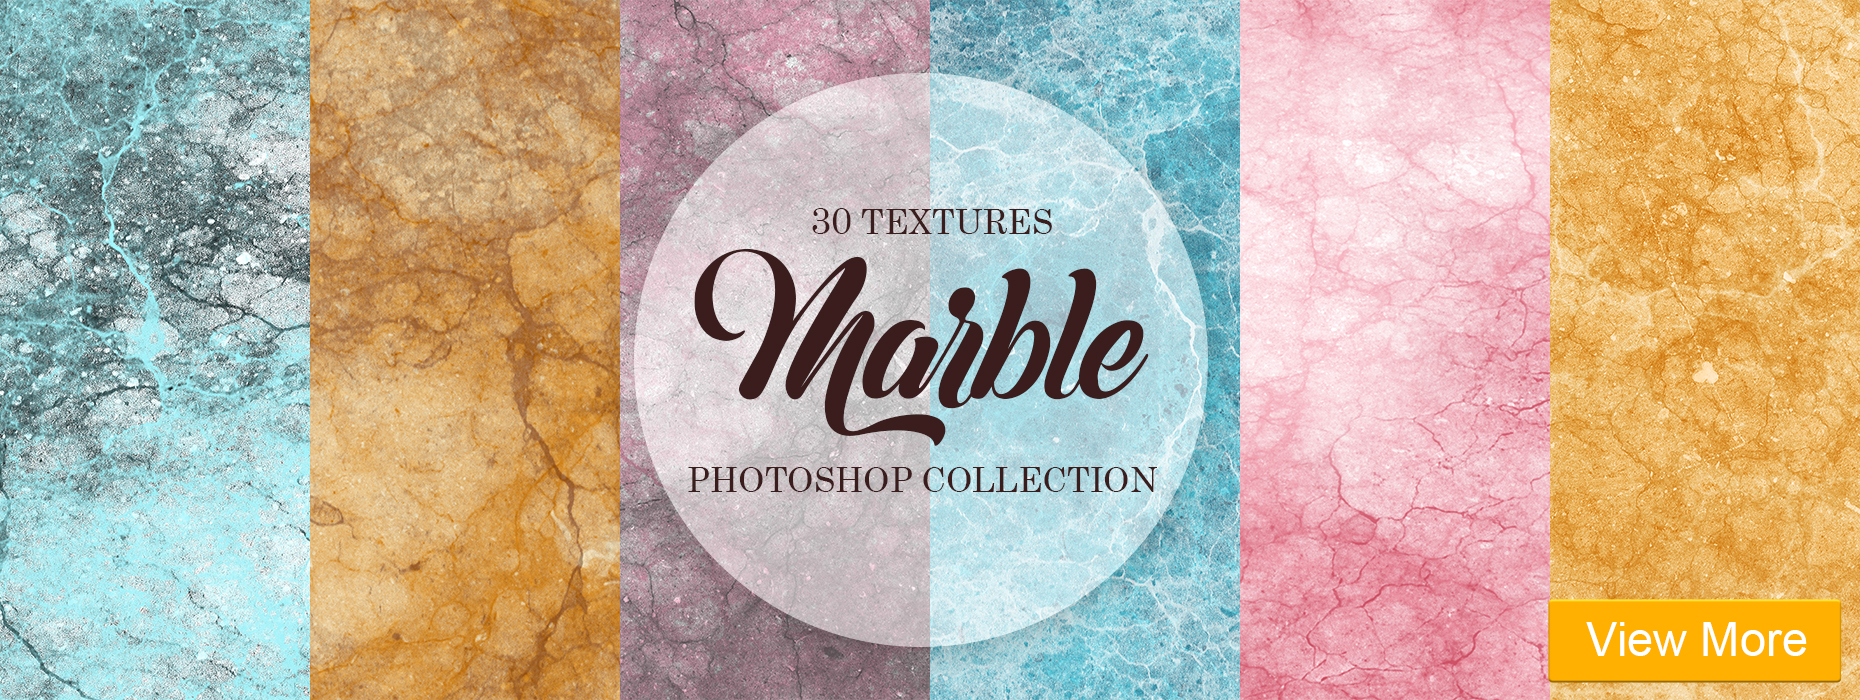 texture for photoshop stone free film look lightroom presets banner girl